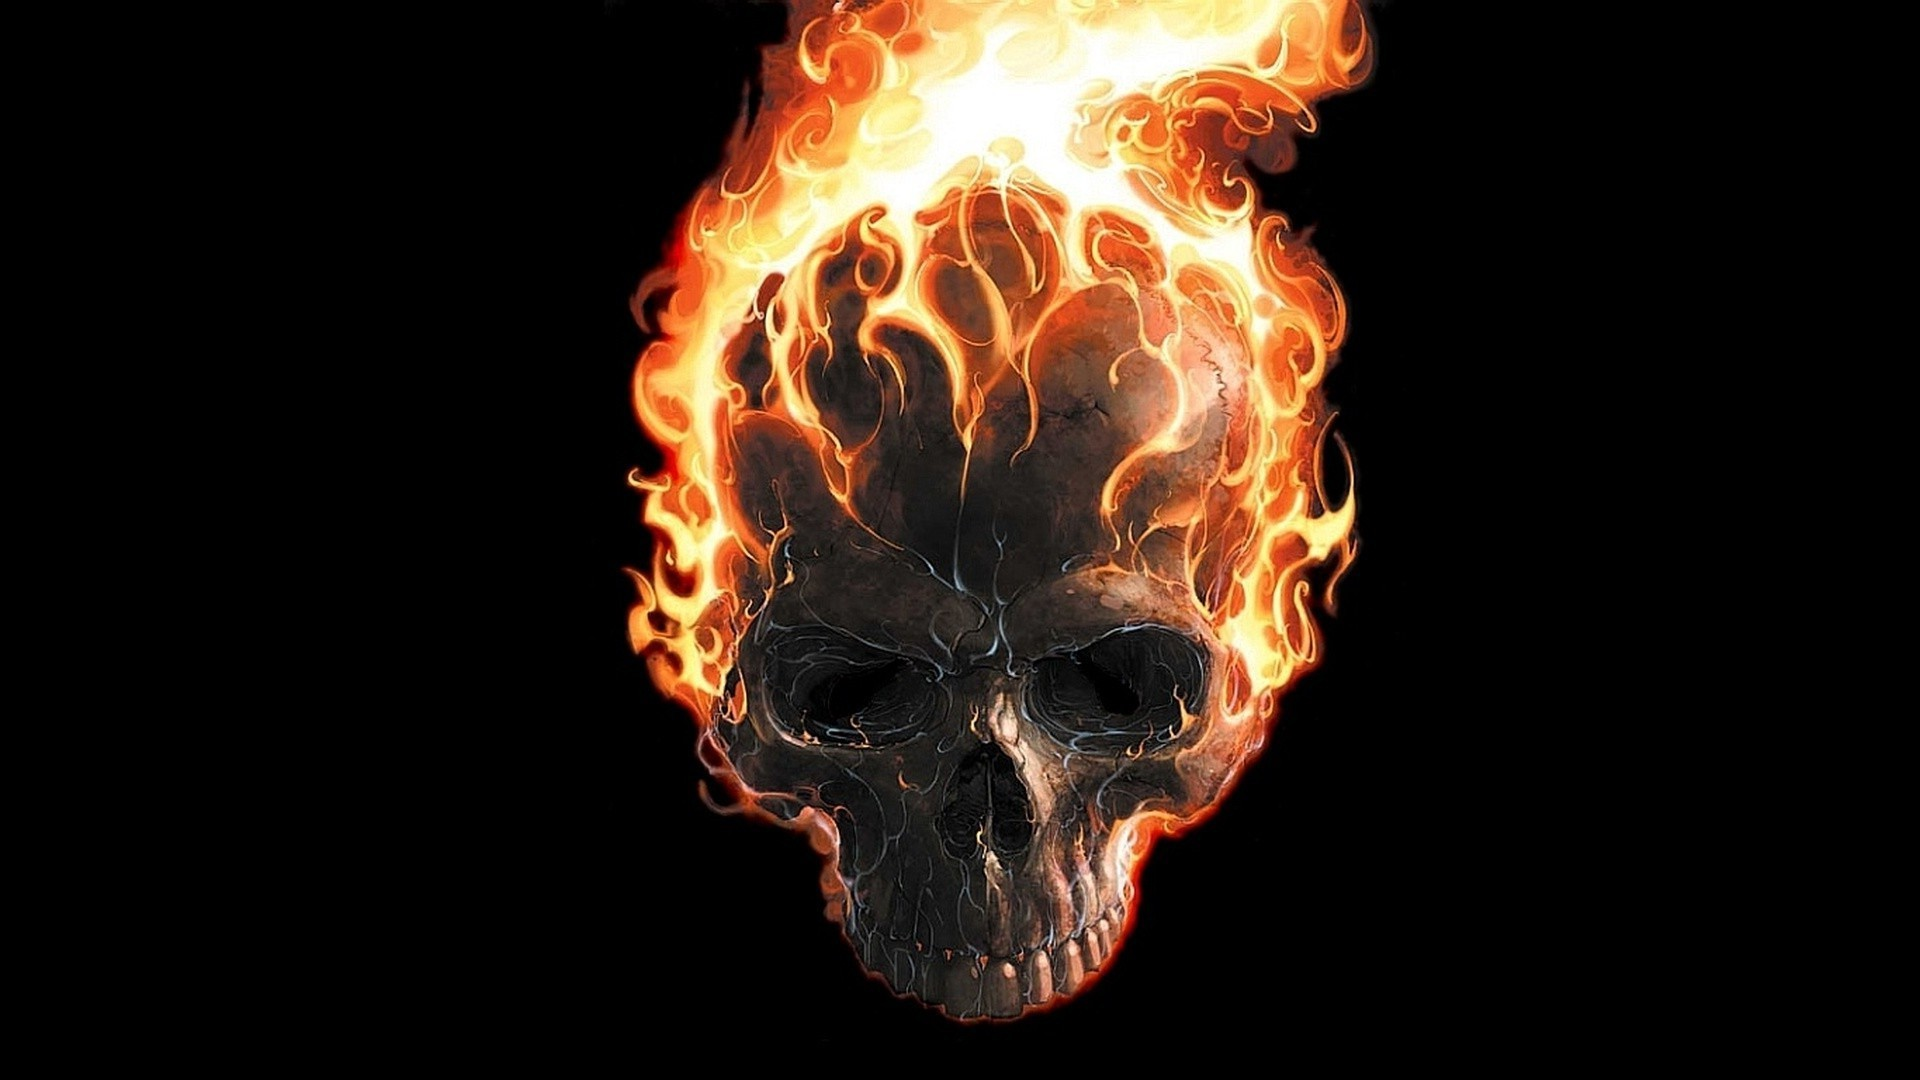 Skull Fire Wallpaper (61+ Images